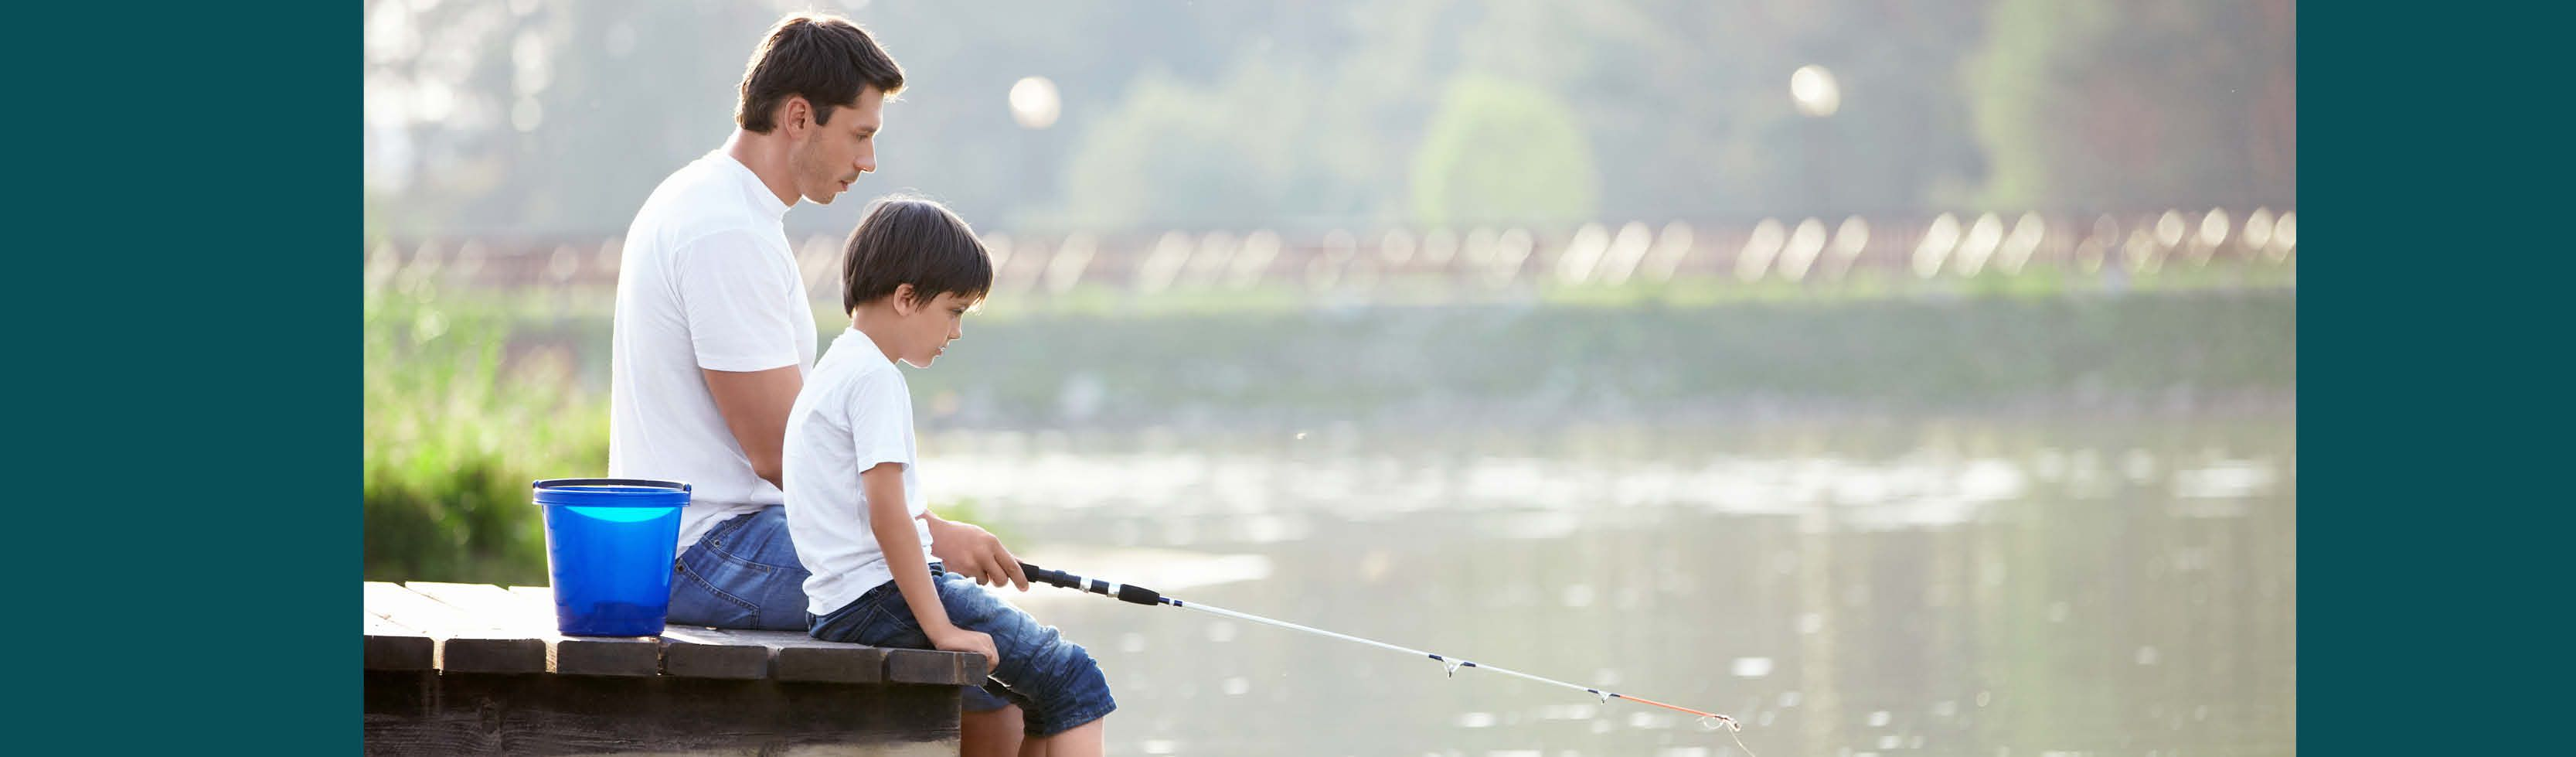 father and son fishing. Parents are PMA members to protect their children